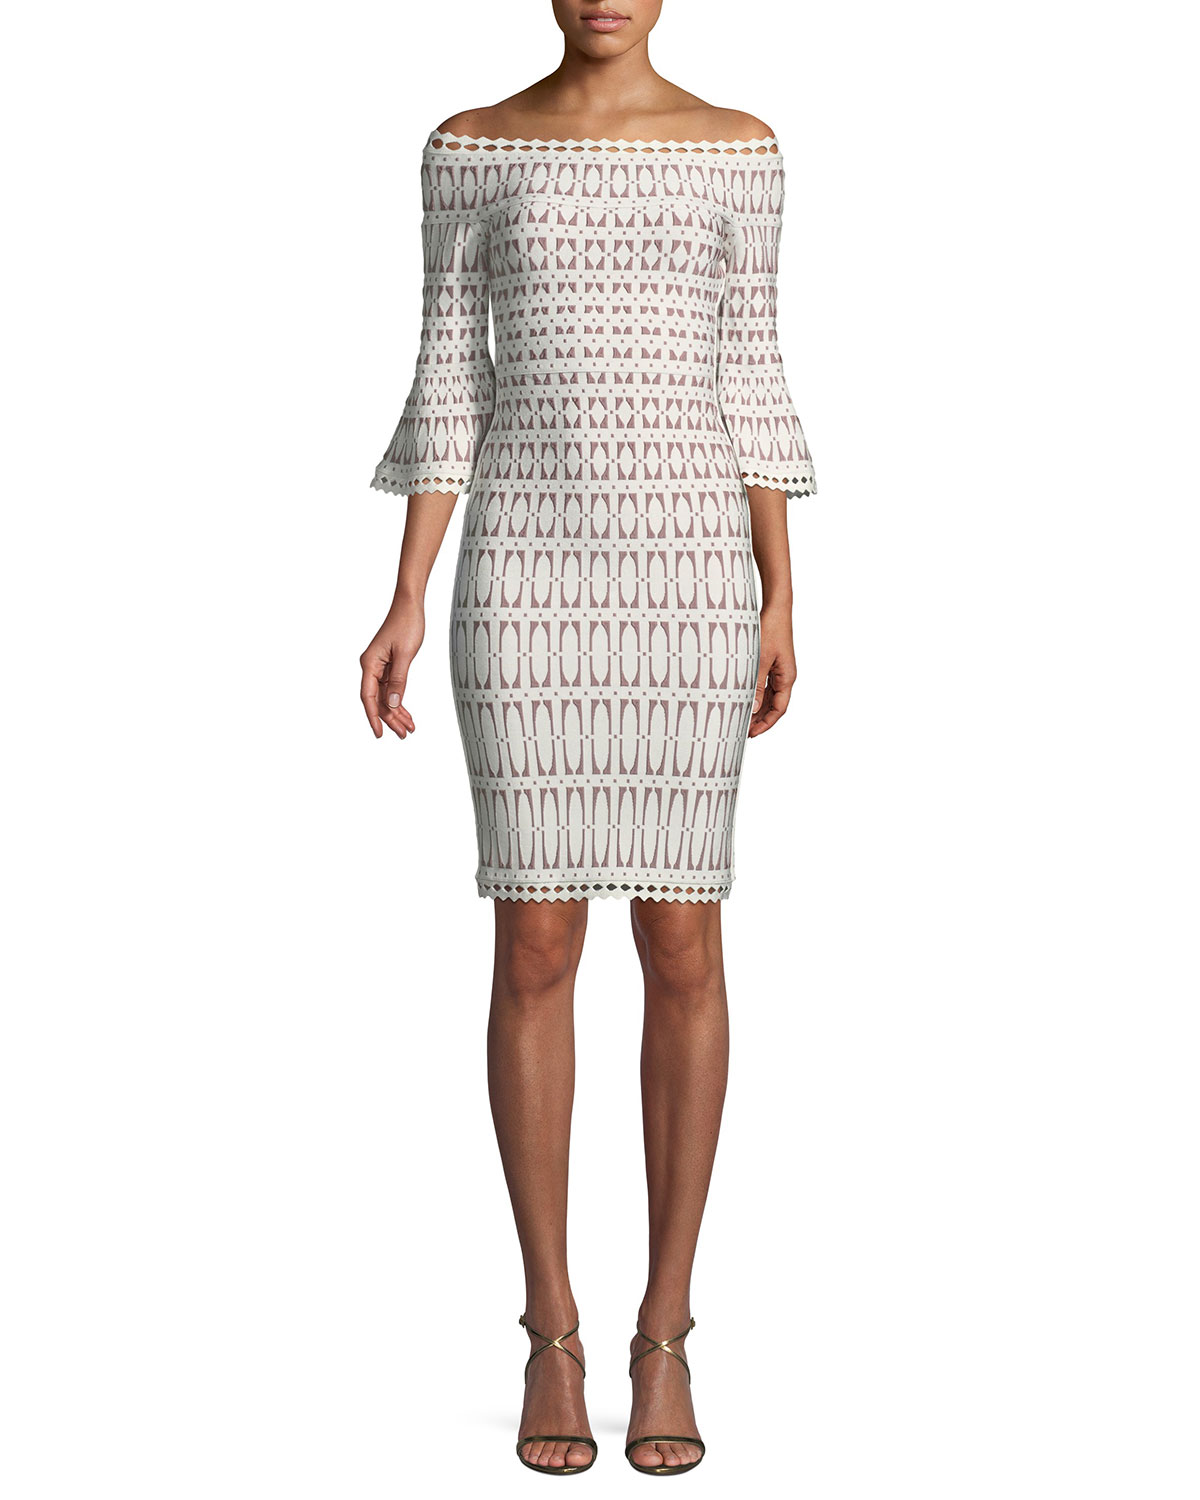 adc858e3abab Herve LegerOff-the-Shoulder Bell-Sleeve Tiled-Jacquard Body-con Cocktail  Dress